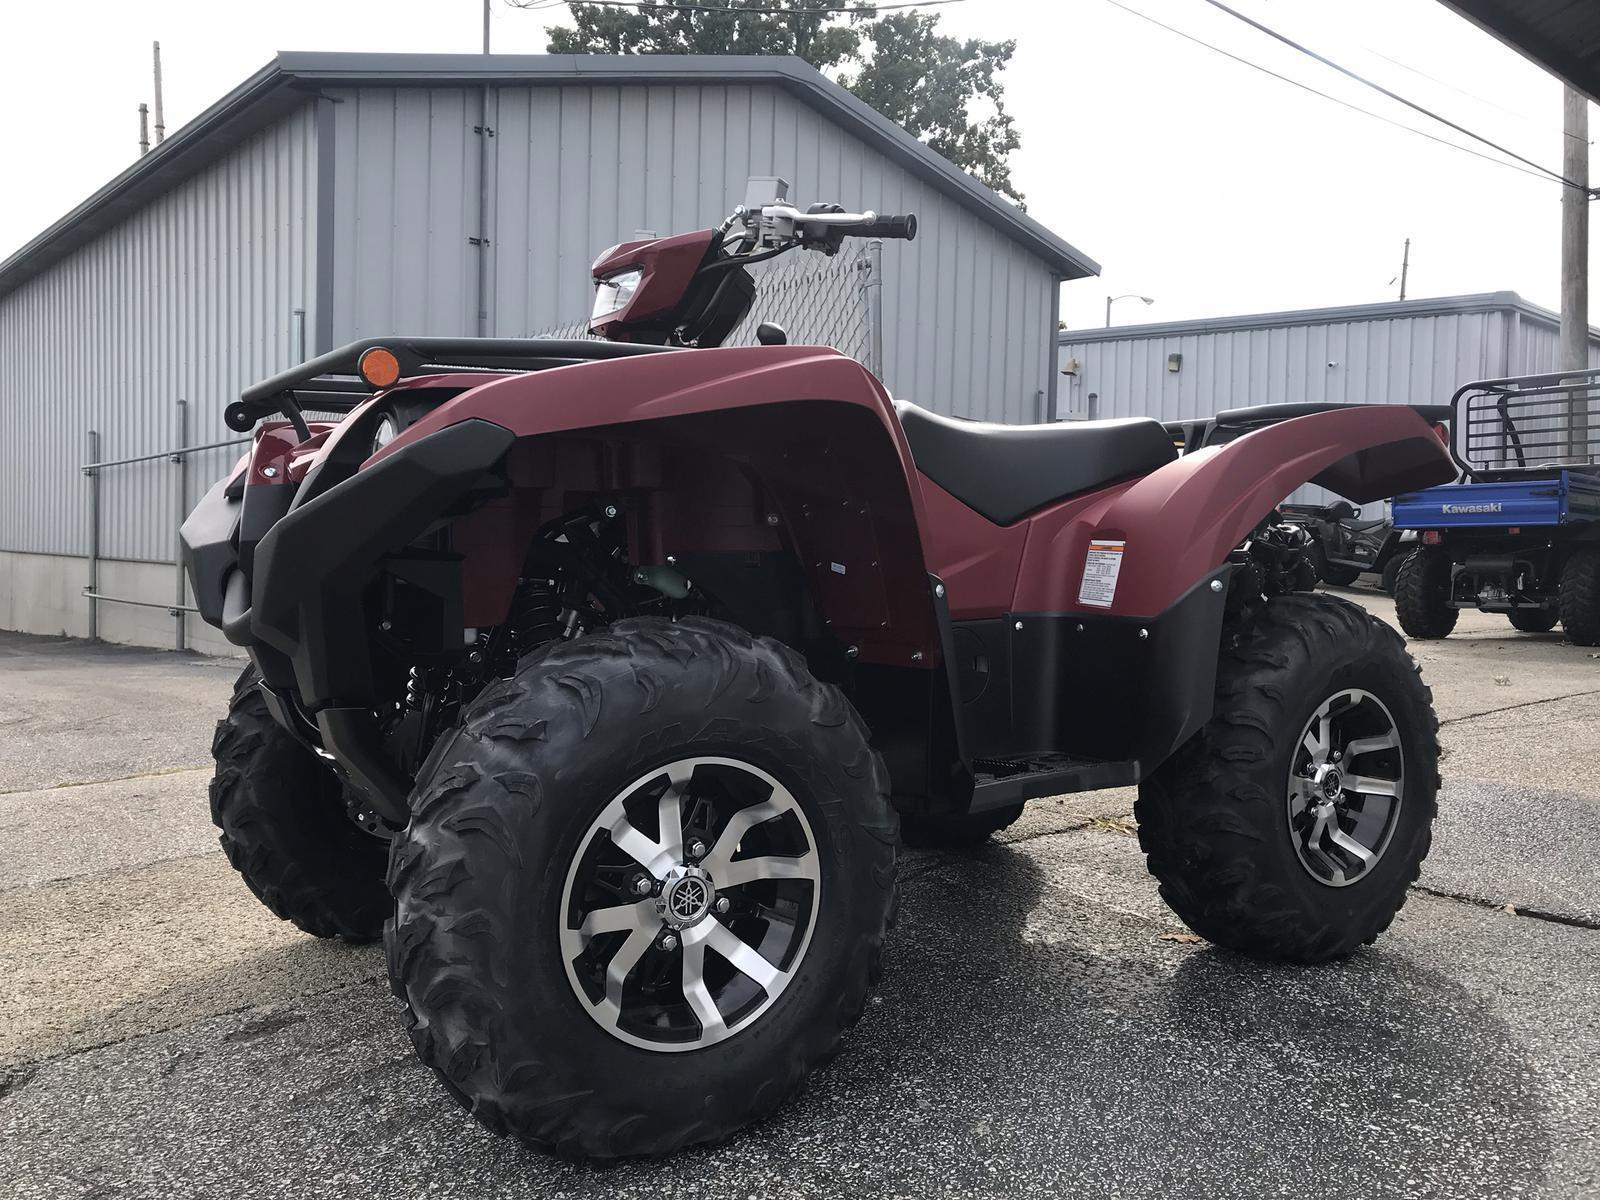 2019 Yamaha Grizzly 700 Eps For Sale In Urbana Il